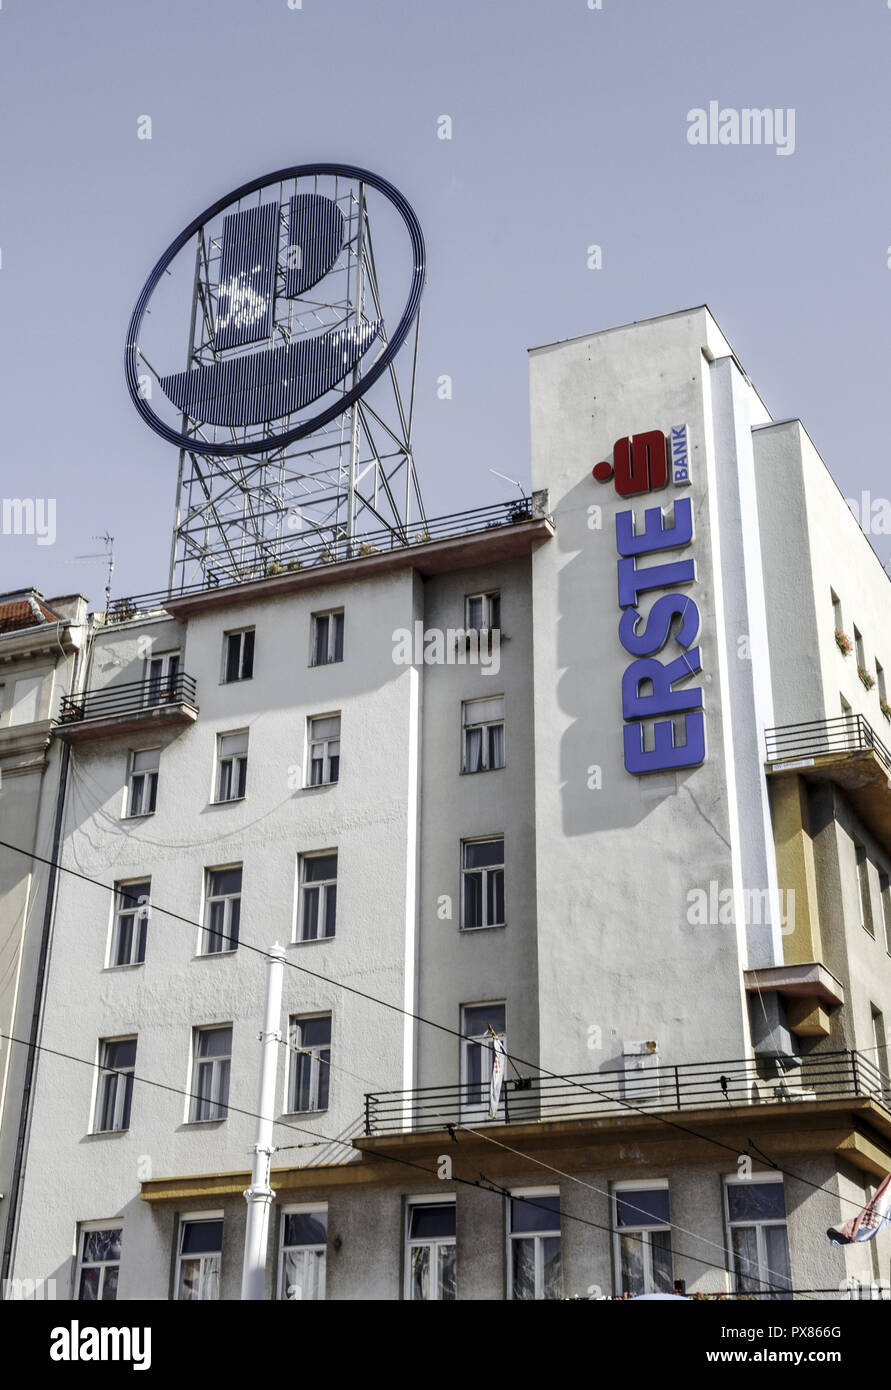 Erste Bank Building High Resolution Stock Photography And Images Alamy